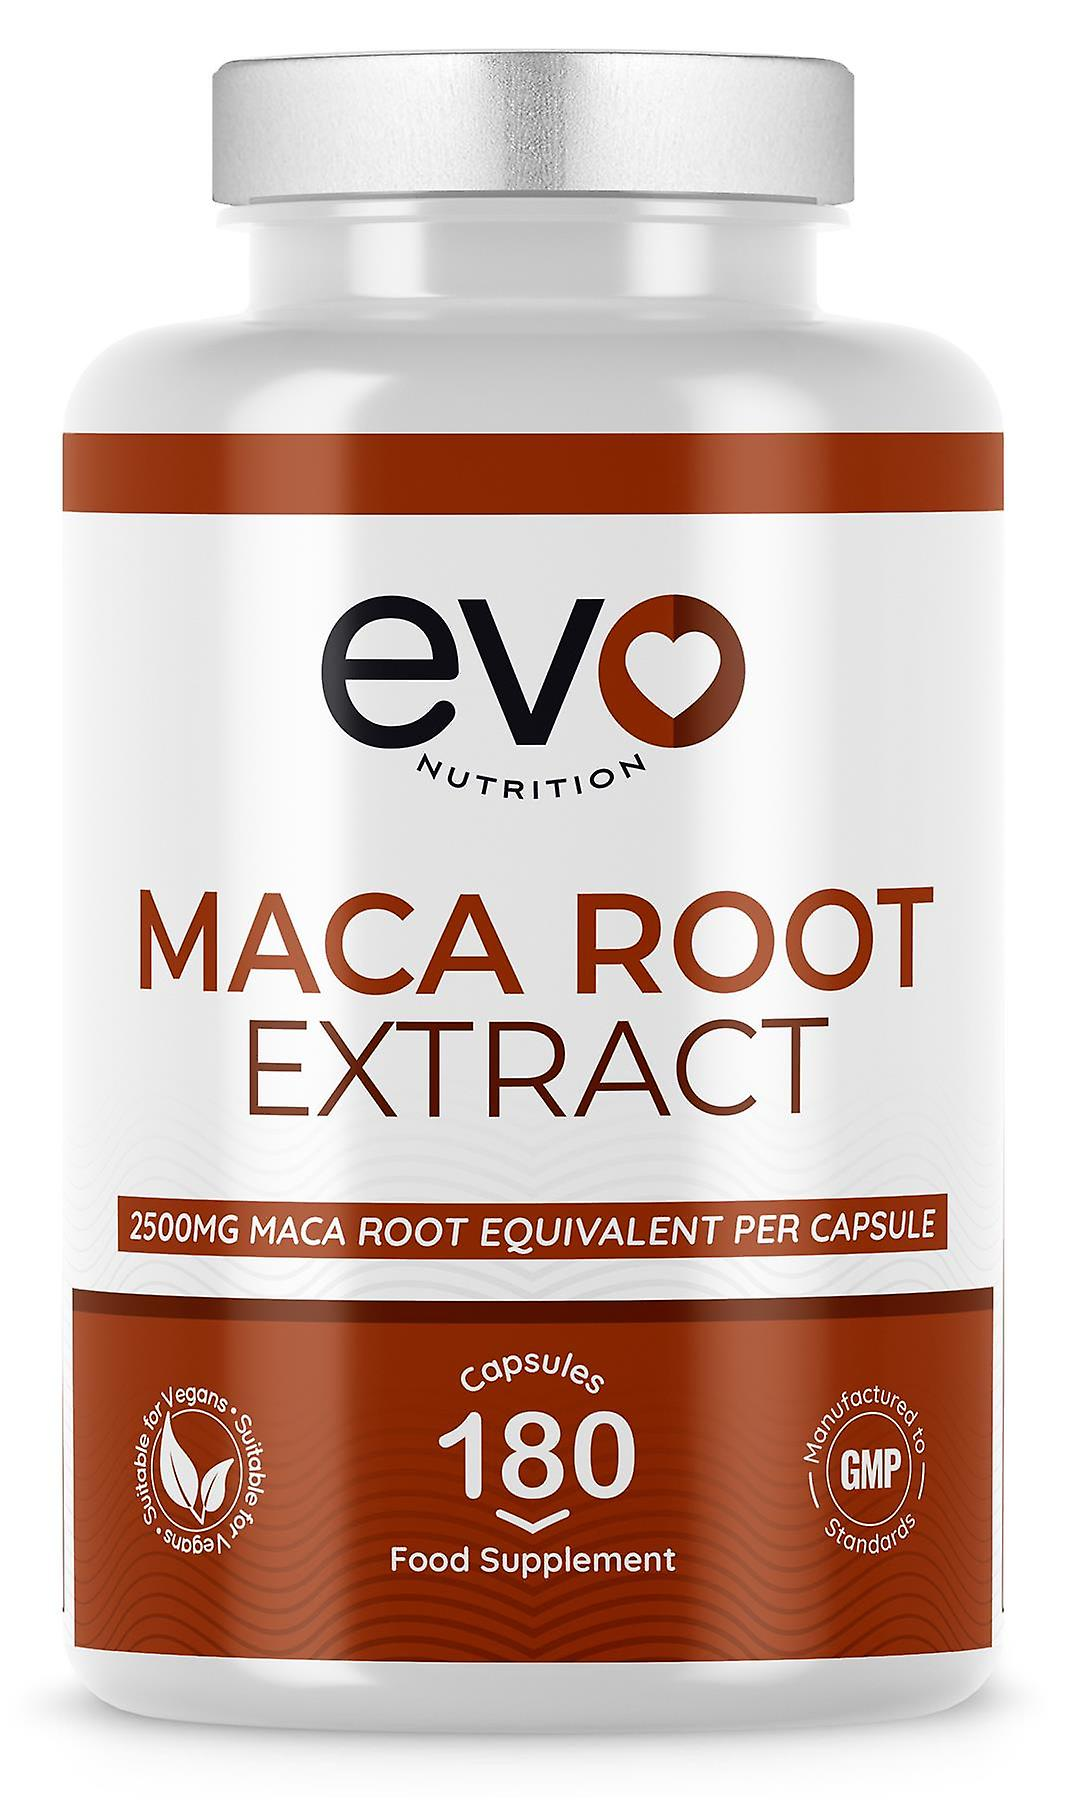 Maca Root Extract (180 Capsules) 2500mg High Strength - Evo Nutrition